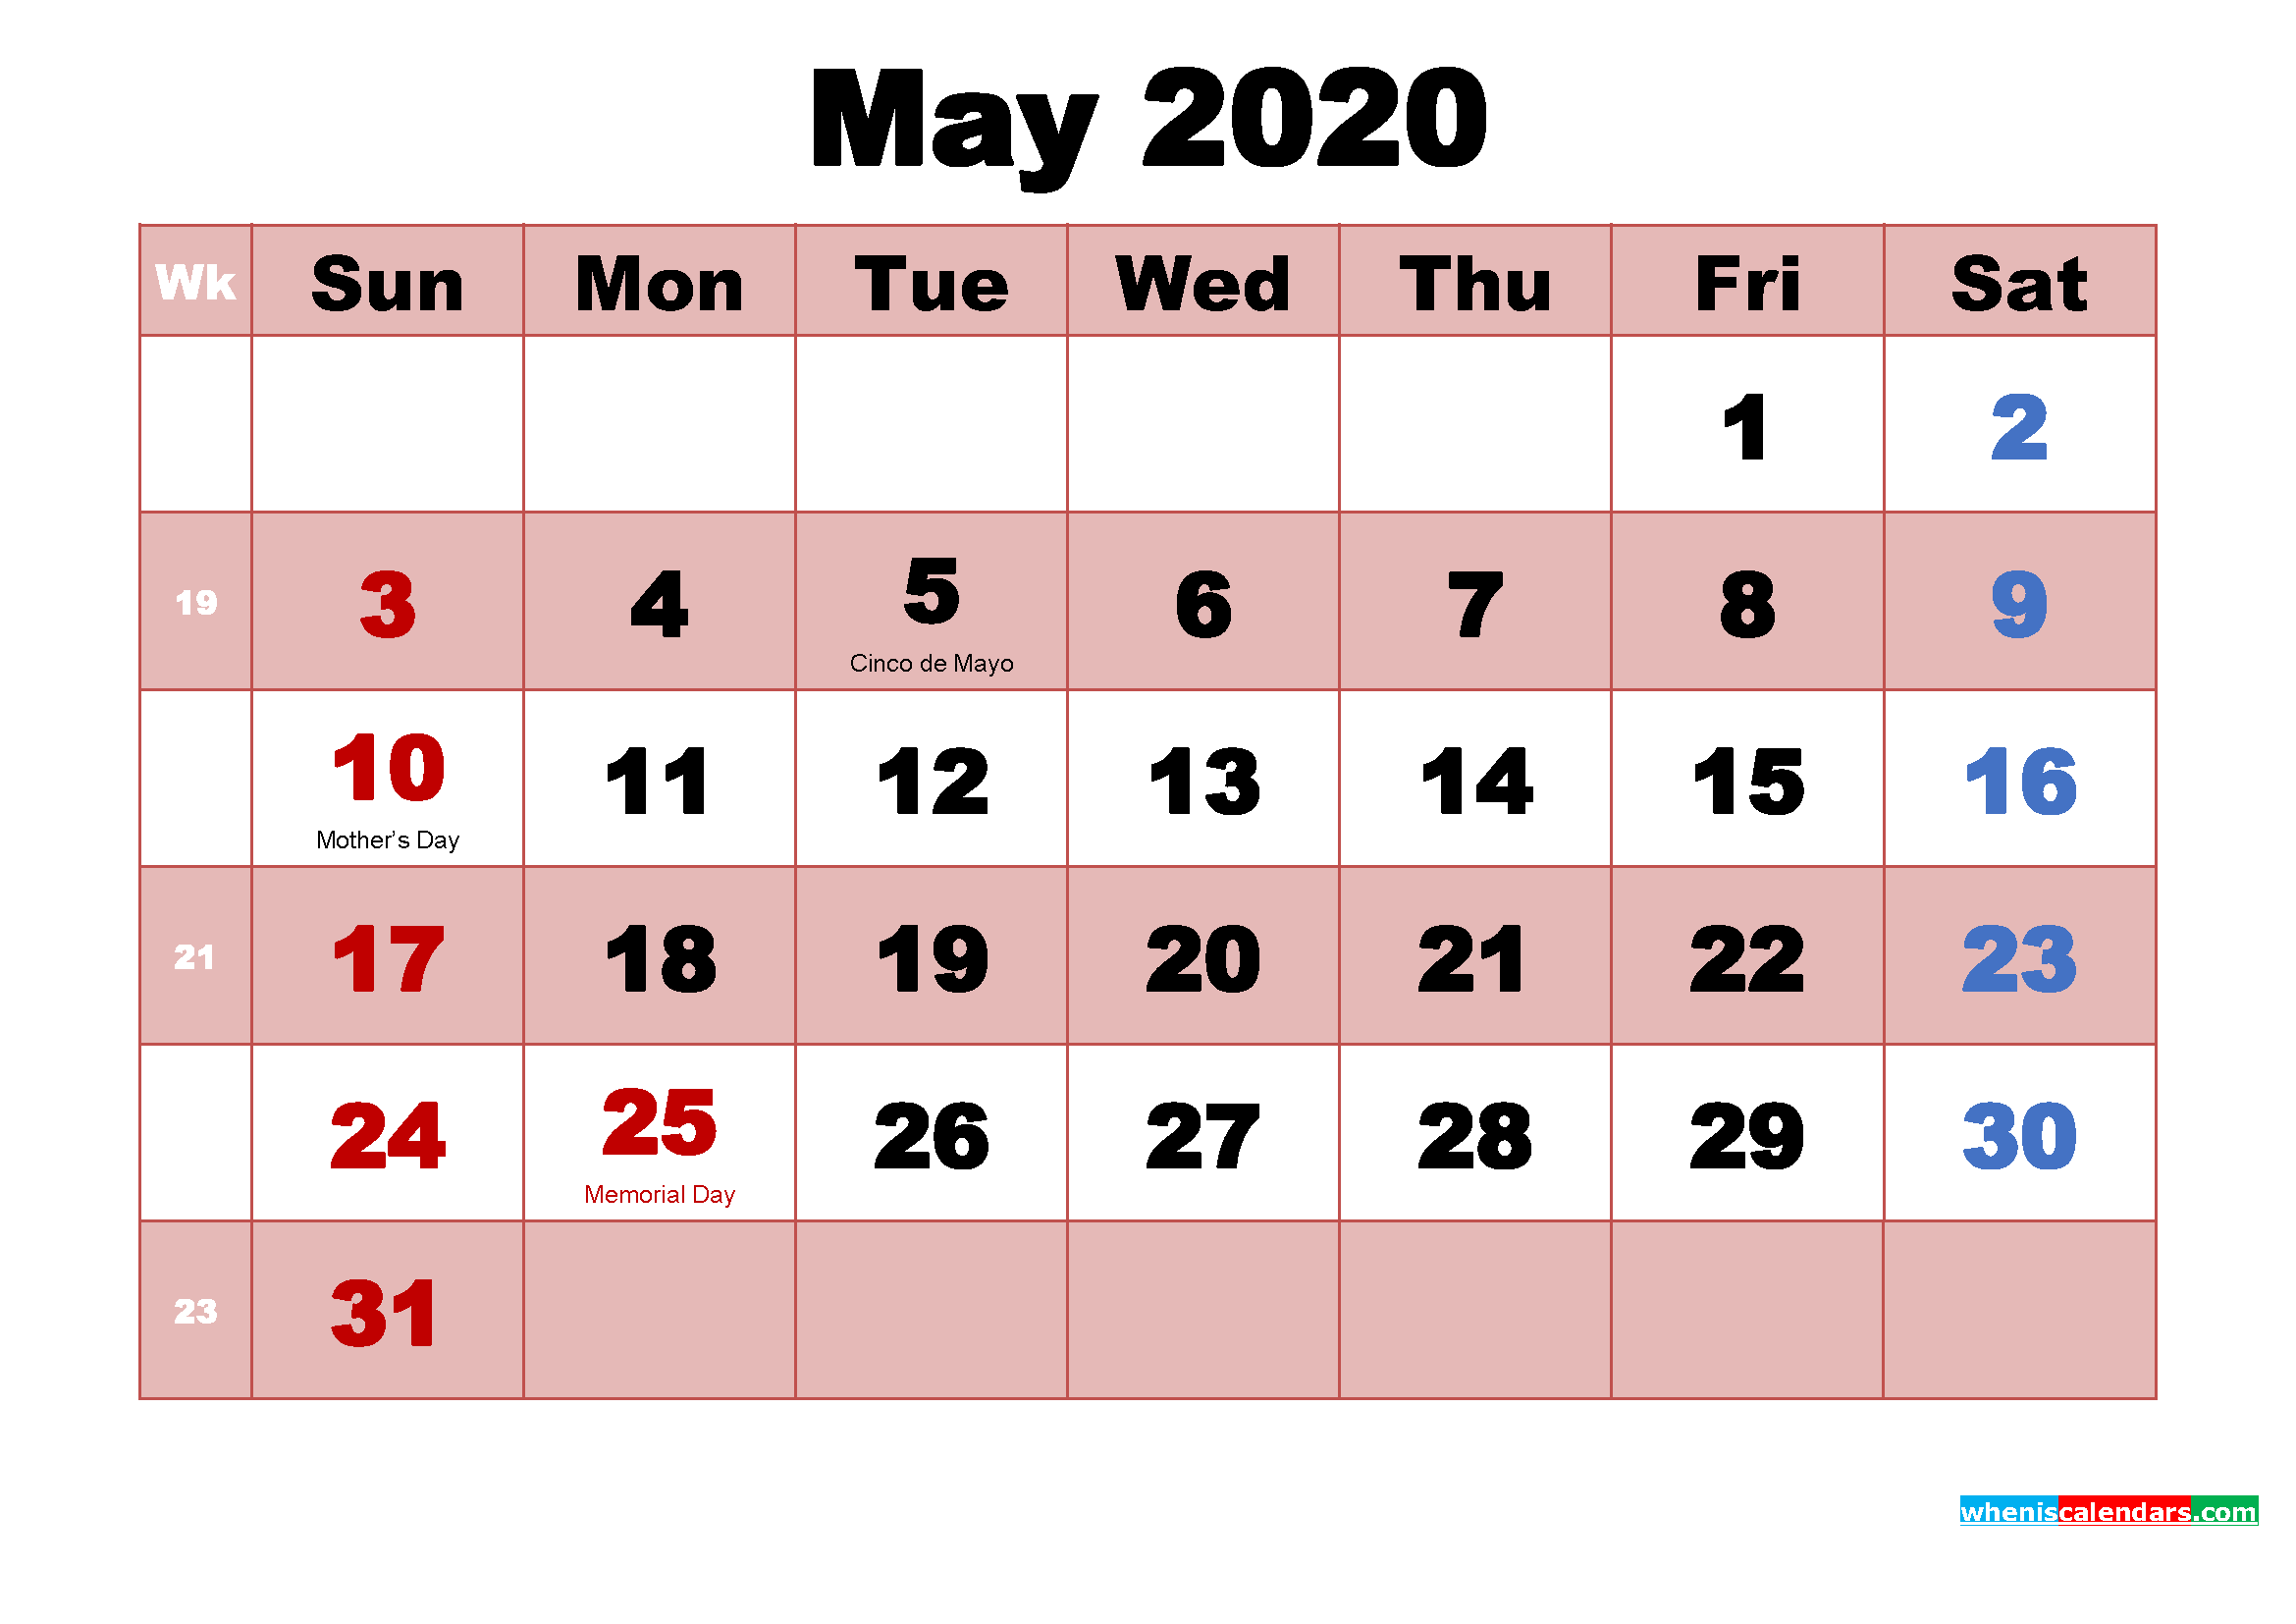 May 2020 Printable Monthly Calendar with Holidays